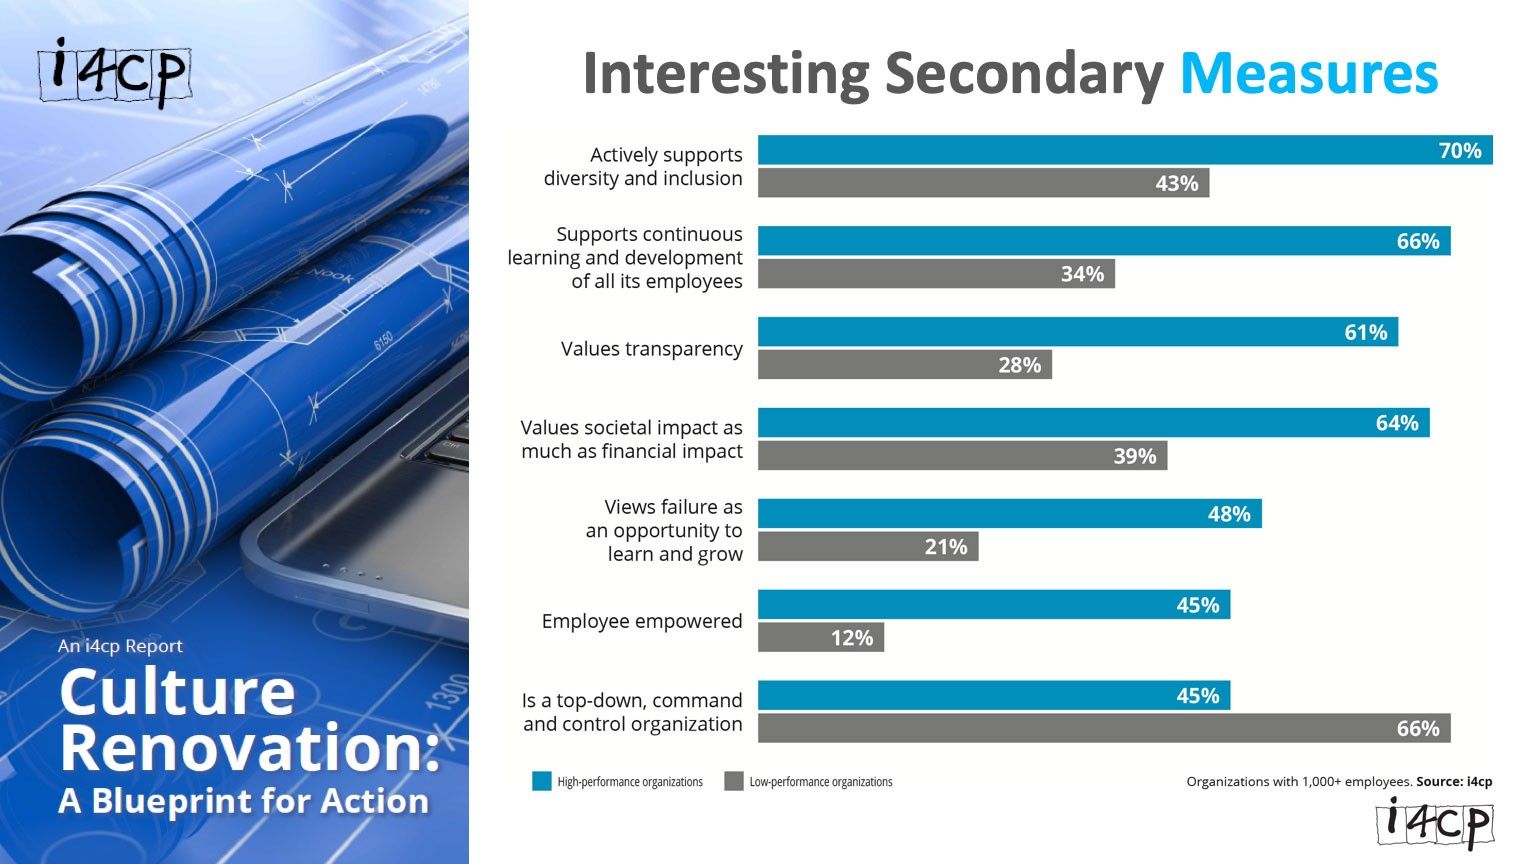 Screenshot of bar graph from i4cp report:  Title: Interesting Secondary Measures  Actively supports diversity and inclusion: High-performance organizations: 70% Low-performance organizations: 43%  Supports continuous learning and development of all its employees: High-performance organizations: 66% Low-performance organizations: 34%  Values transparency: High-performance organizations: 61% Low-performance organizations: 28%  Values societal impact as much as financial impact: High-performance organizations: 64% Low-performance organizations: 39%  Views failure as an opportunity to learn and grow: High-performance organizations: 48% Low-performance organizations: 21%  Employee empowered: High-performance organizations: 45% Low-performance organizations: 12%  Is a top-down, command and control organization: High-performance organizations: 45% Low-performance organizations: 66%  *Organizations with 1,000+ employees (Source: i4cp)